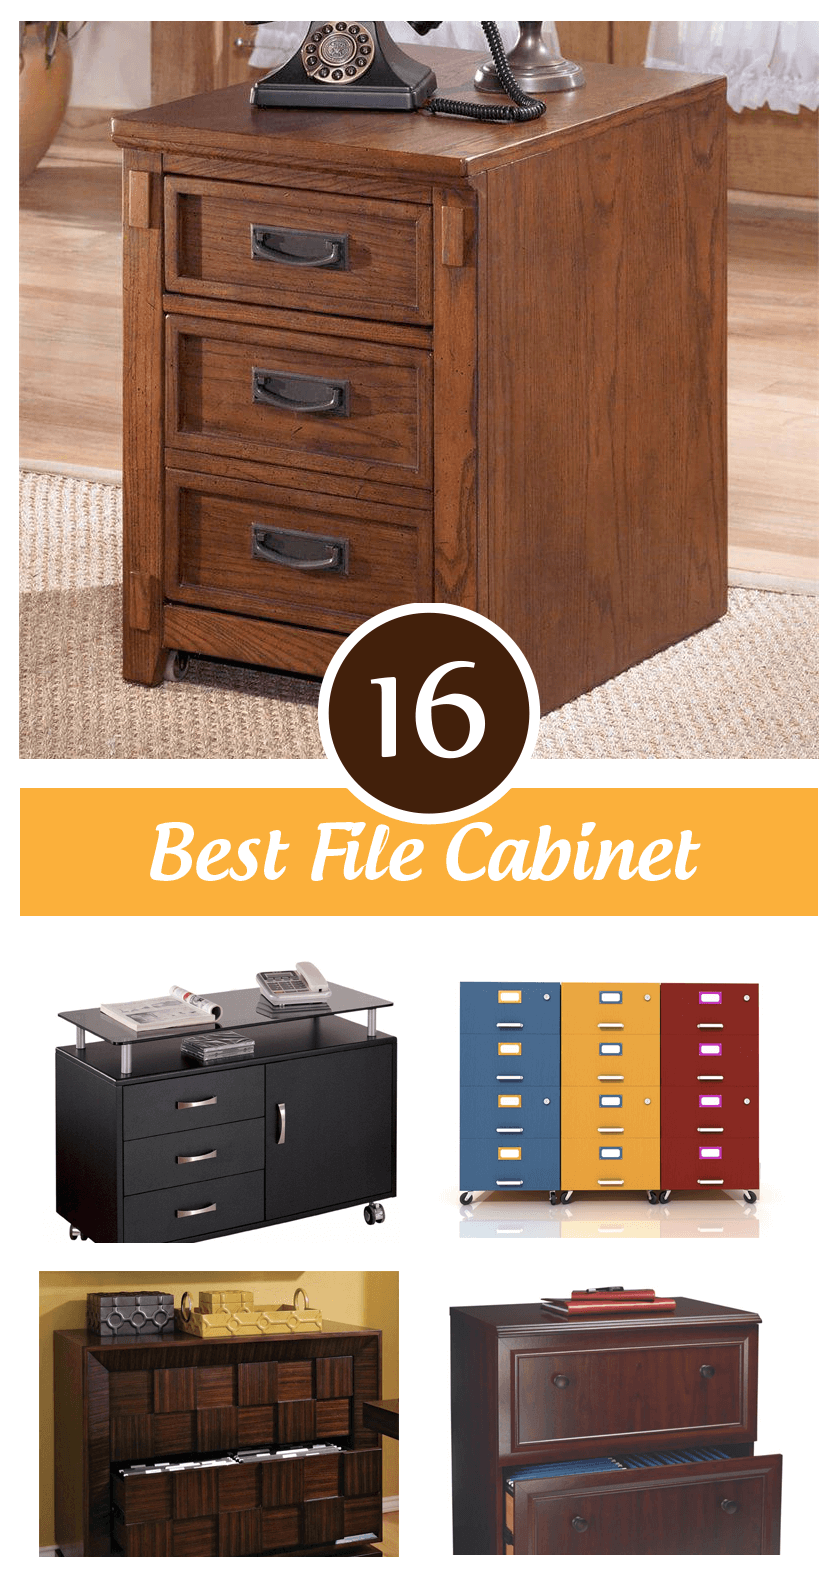 Best File Cabinet